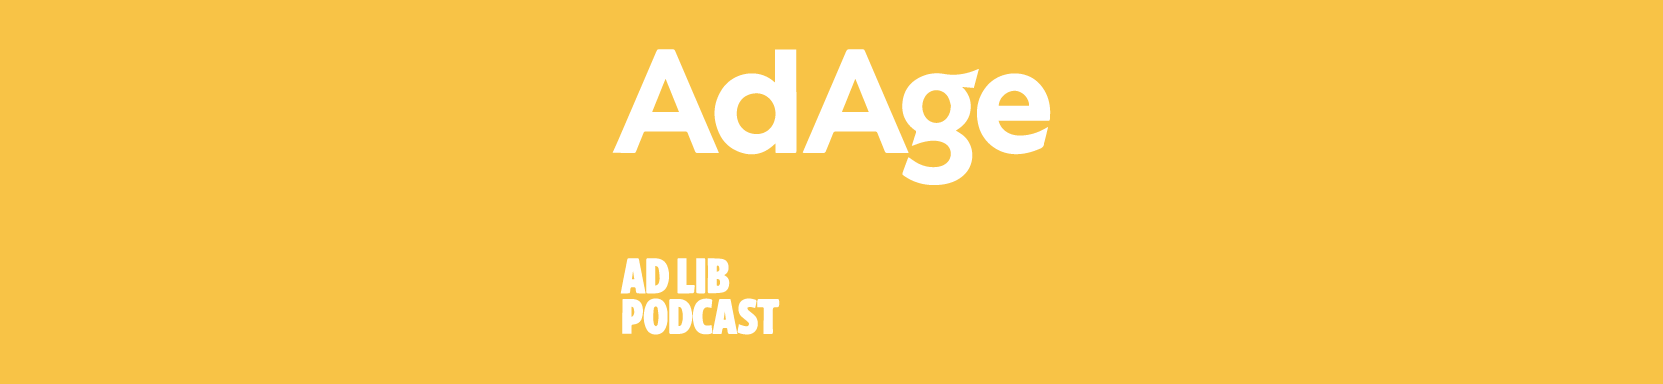 AdAge AdLab Podcast